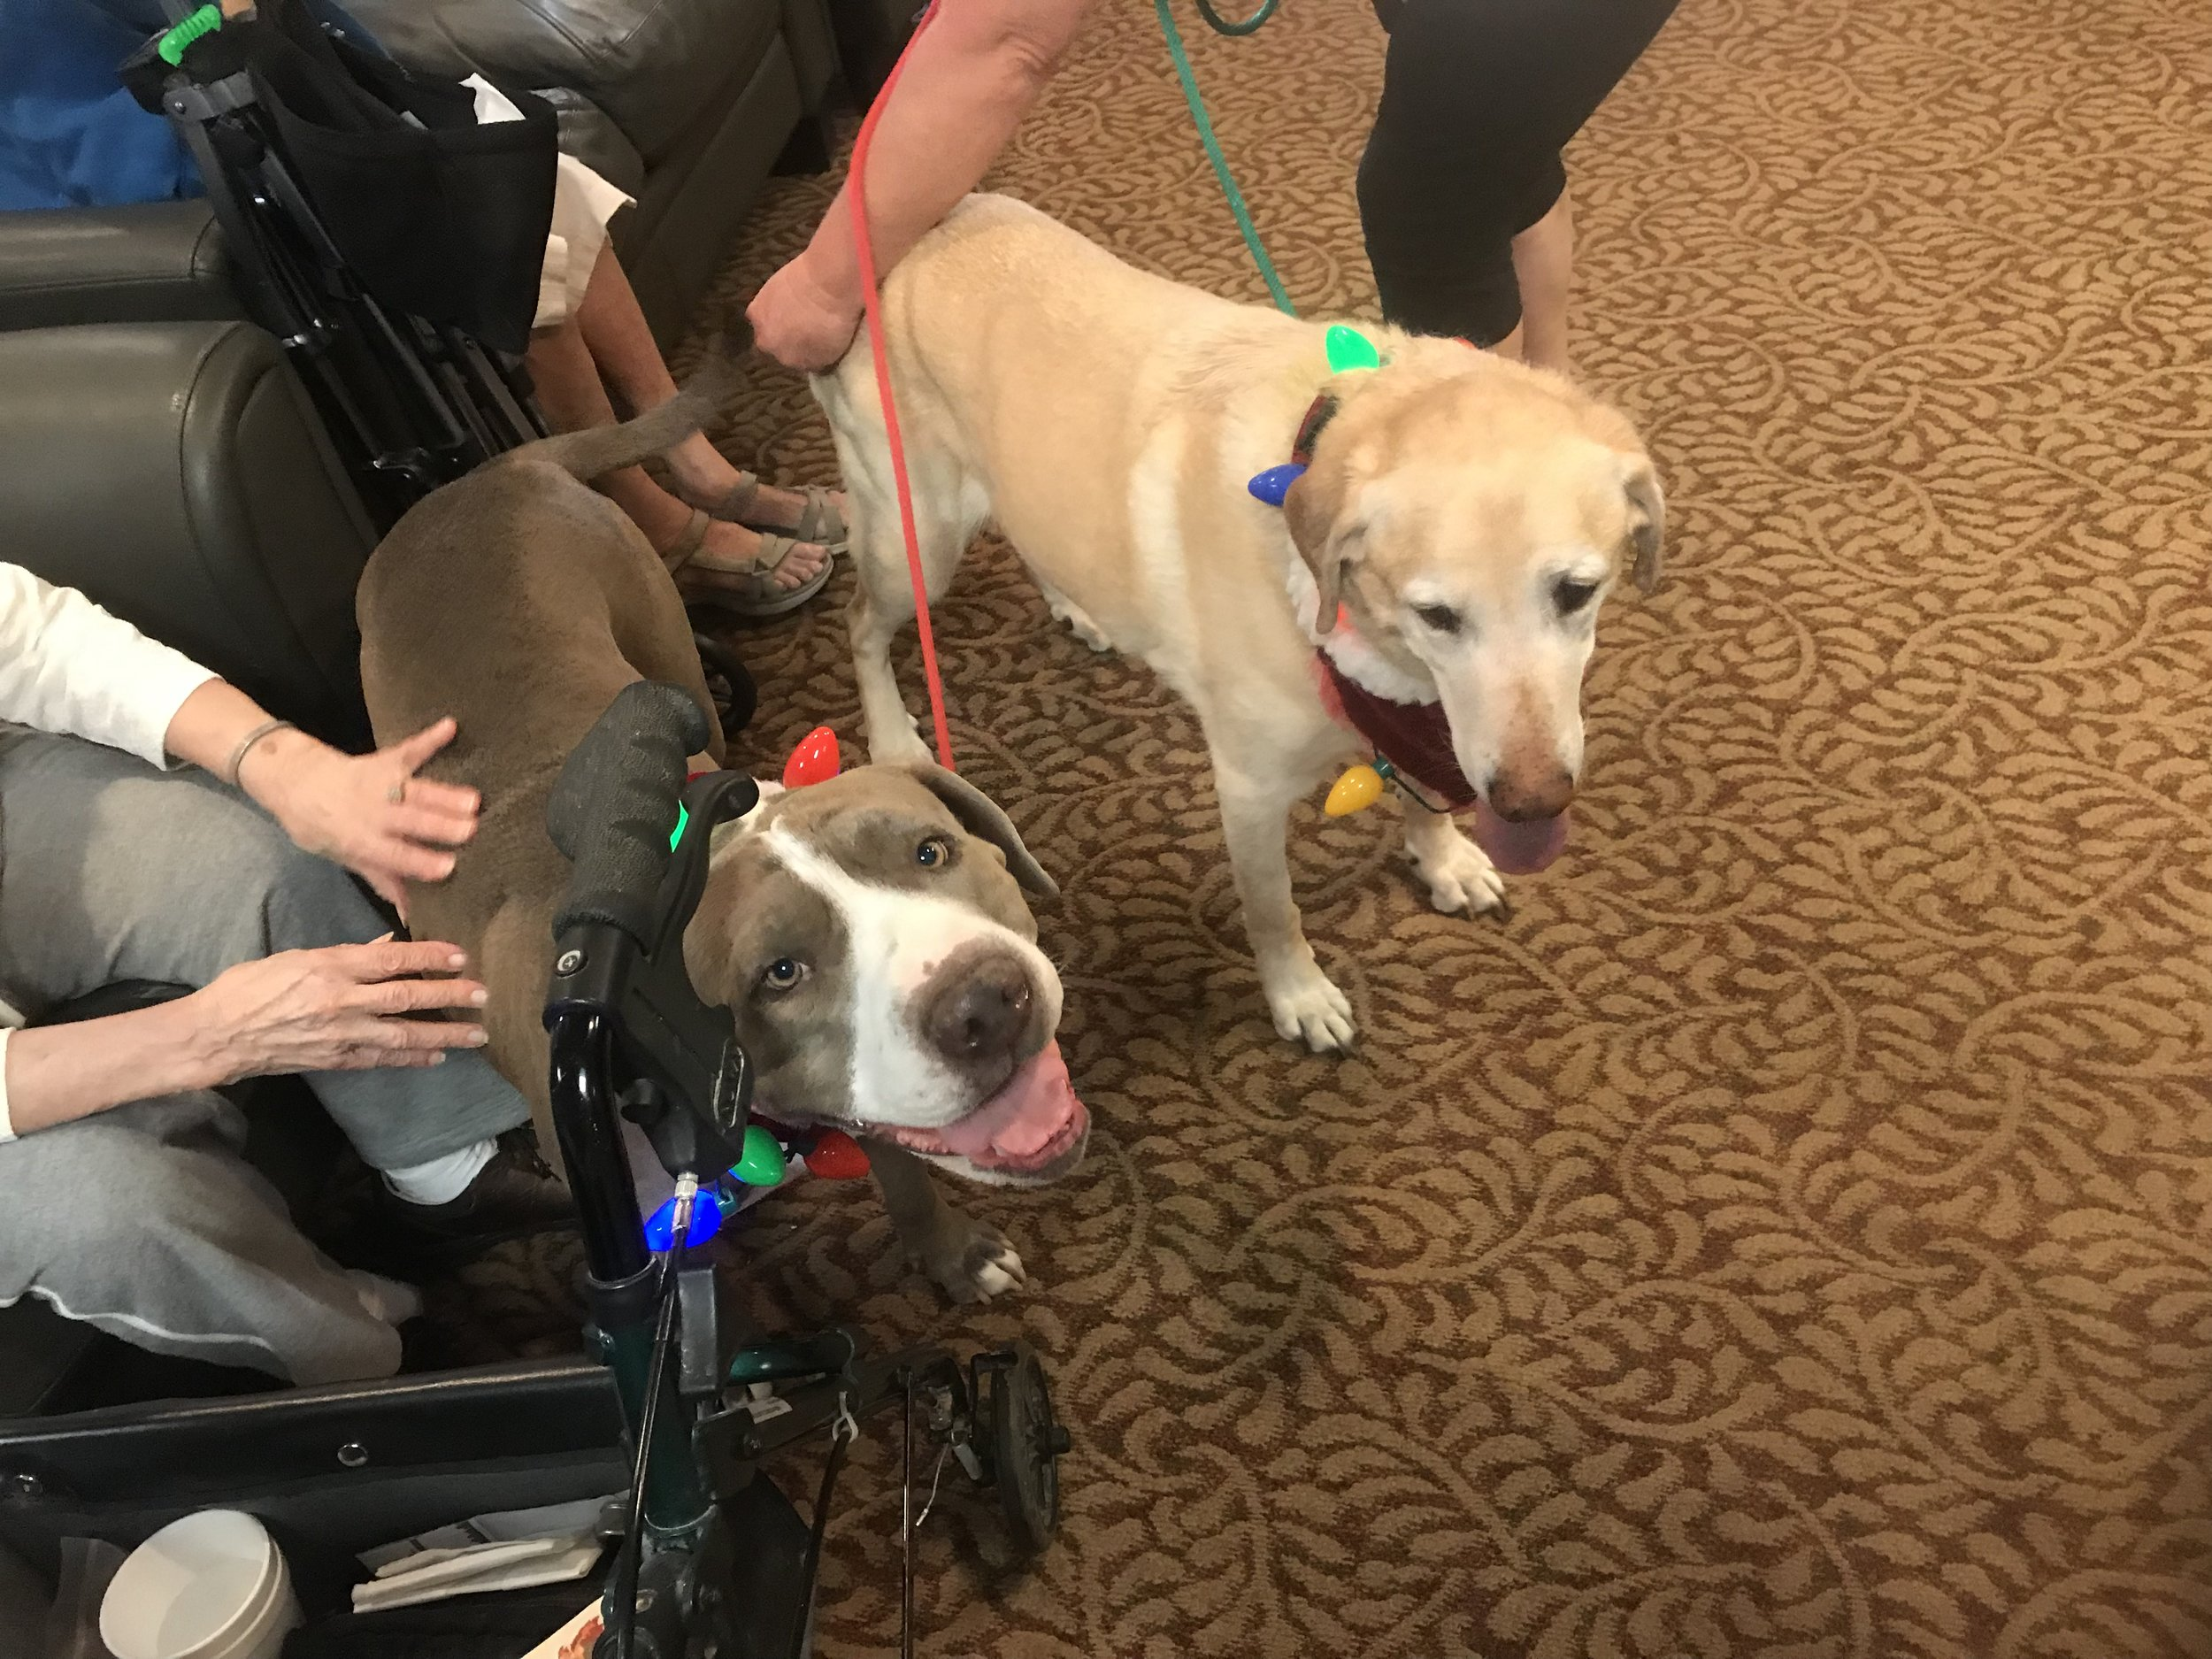 Petunia and JoJo are spreading love at Olive Grove Retirement Center. December 2018.